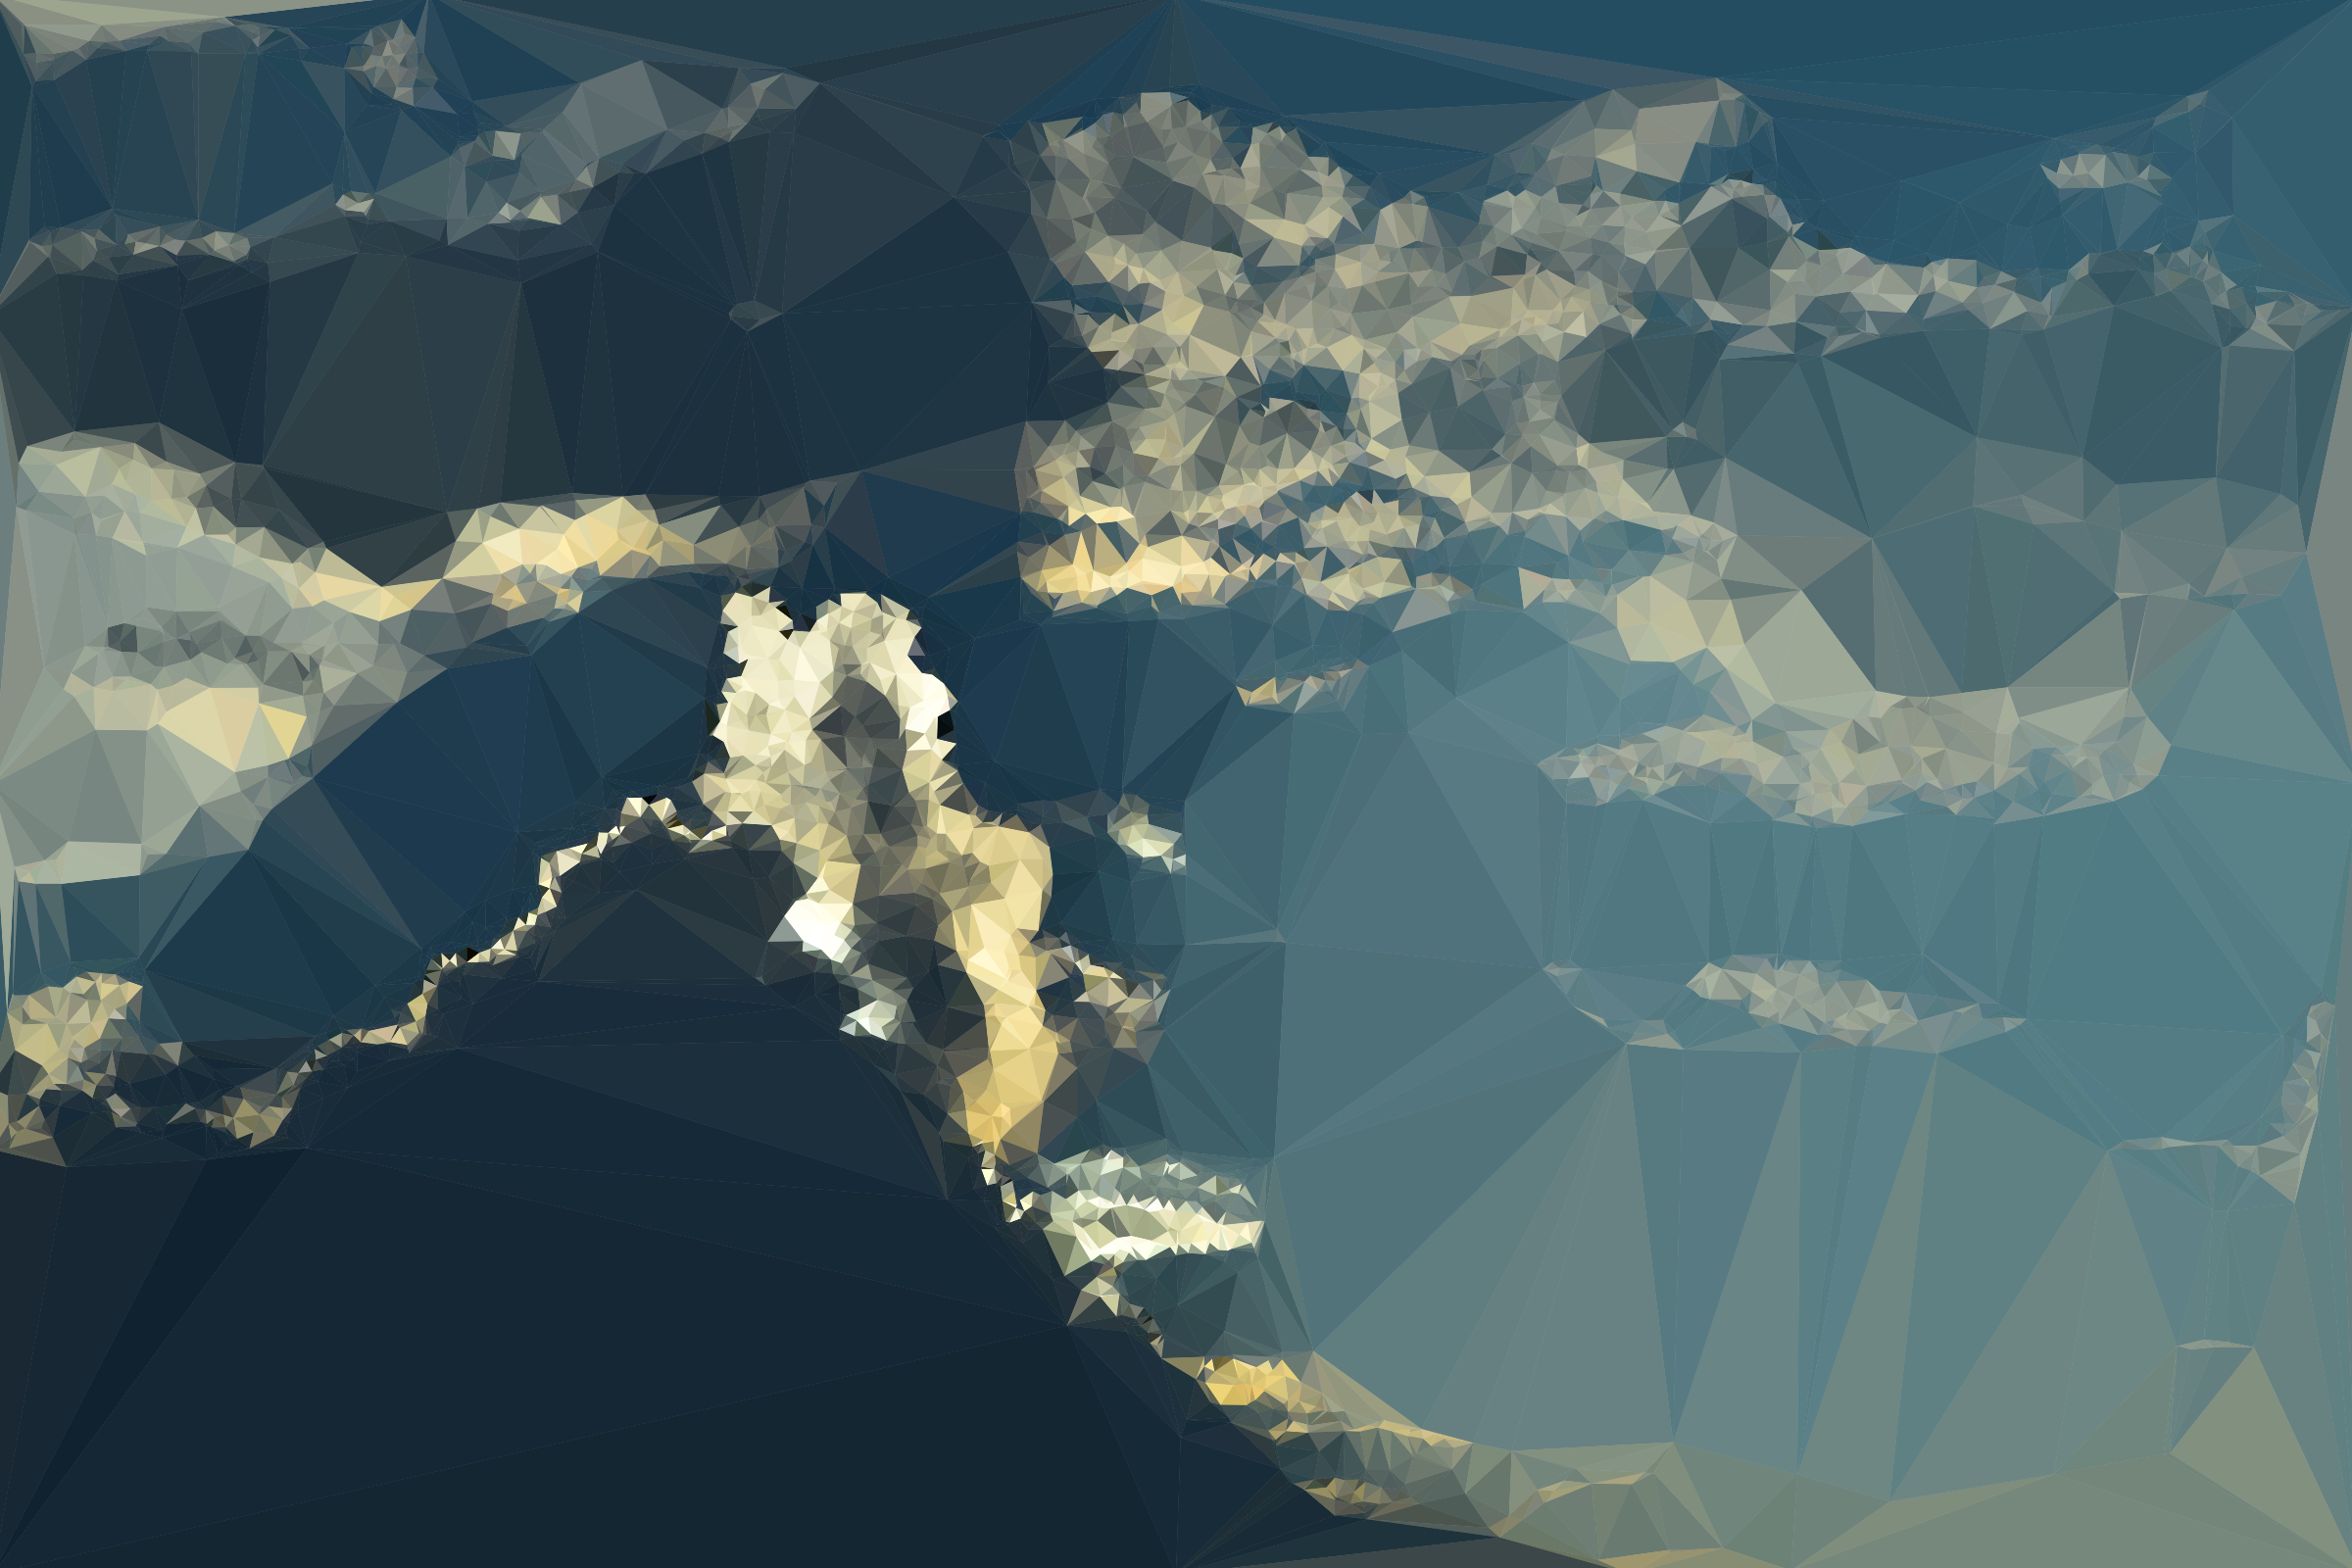 Low Poly Tumultuous Sky by GDJ